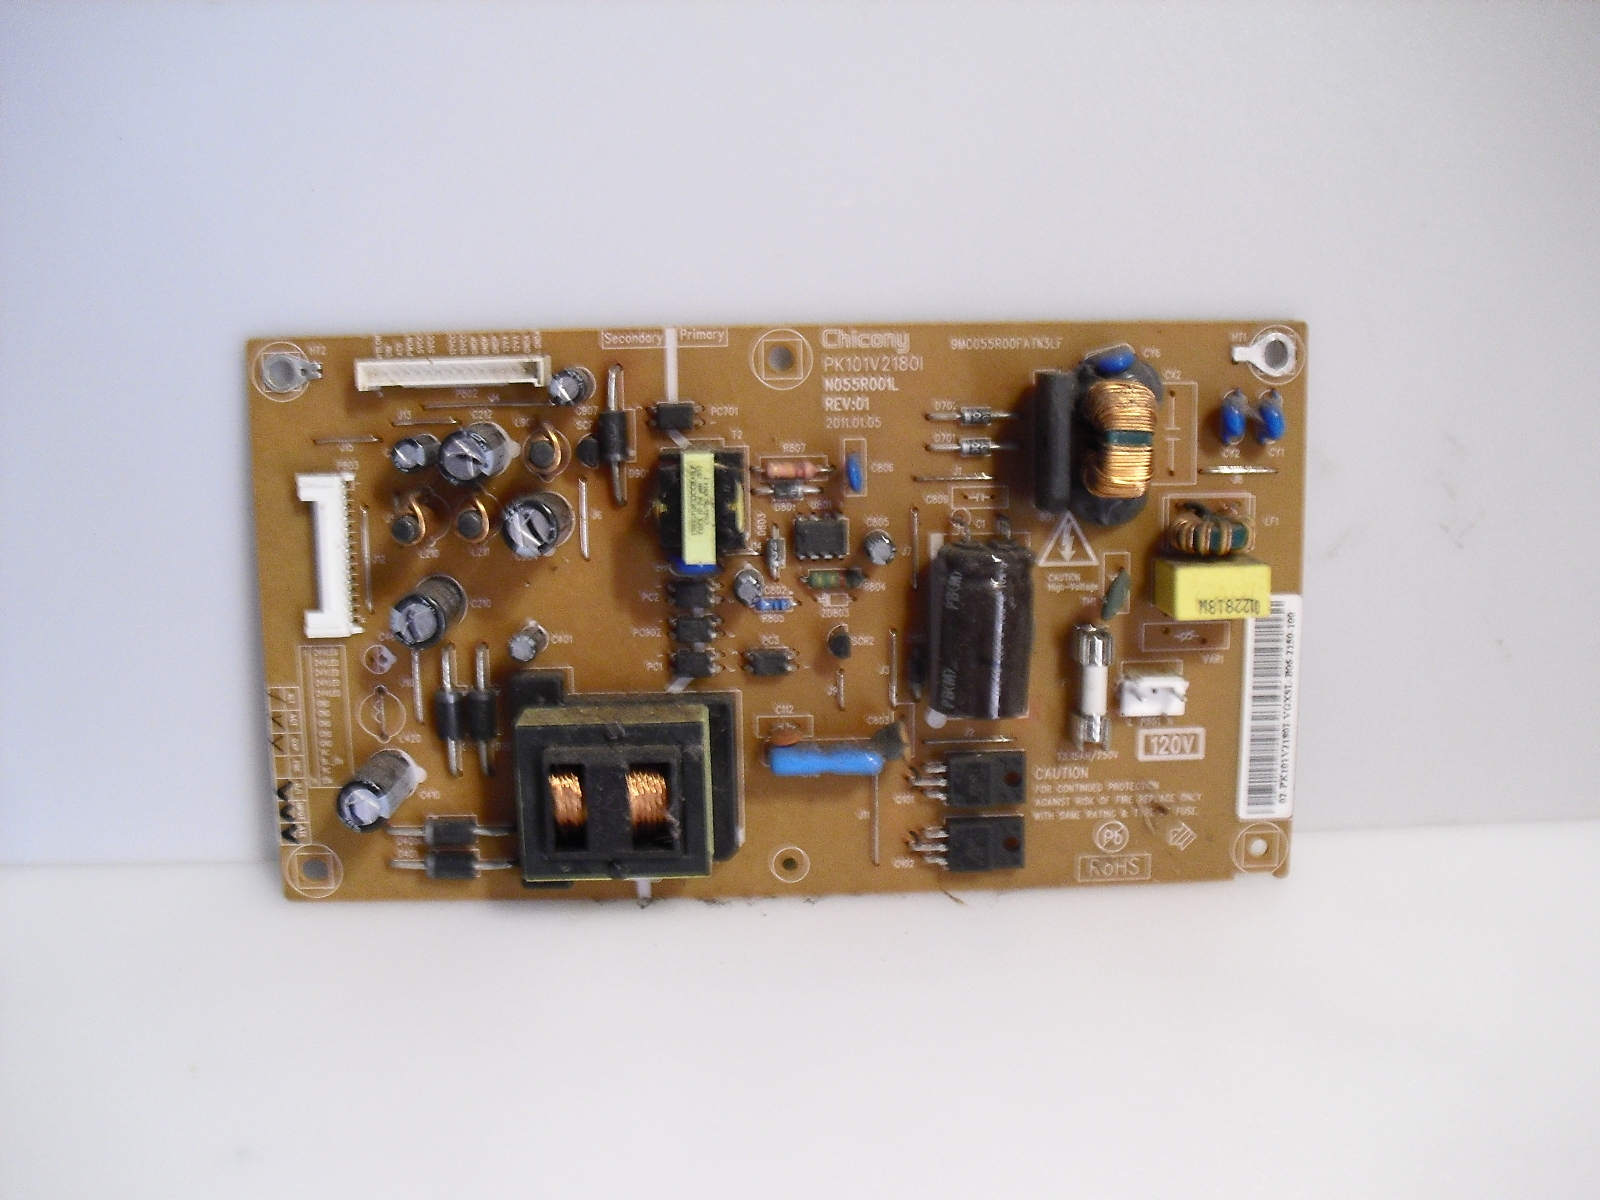 Primary image for pk101v21801  power  board   for  toshiba   24sLv411u